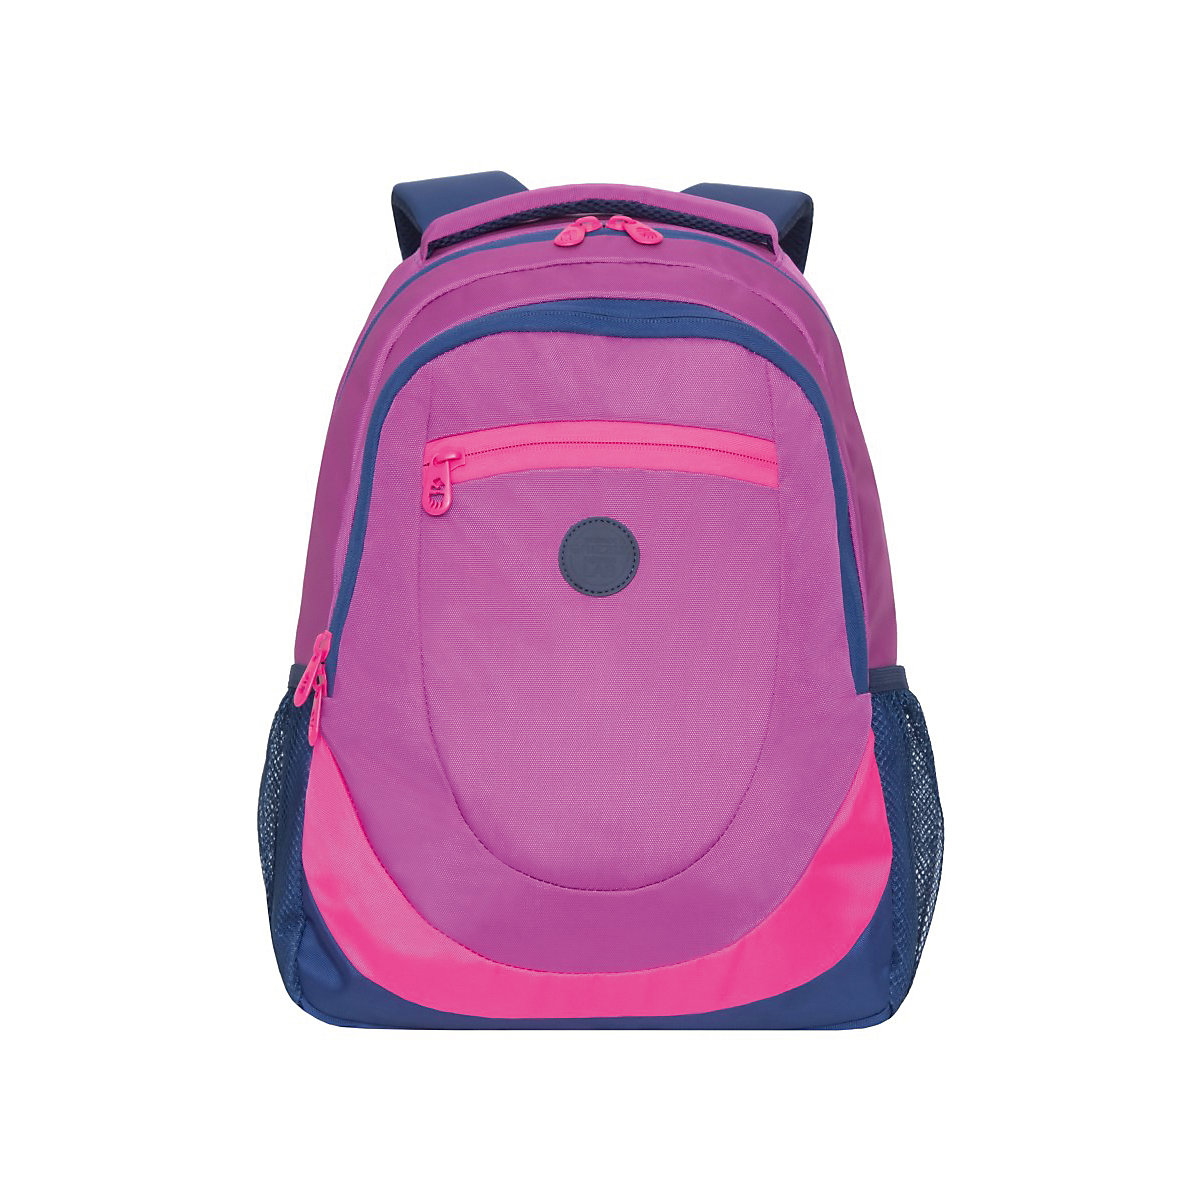 GRIZZLY School Bags 11863918 Schoolbag Backpack Orthopedic Bag For Boy And Girl Animals MTpromo